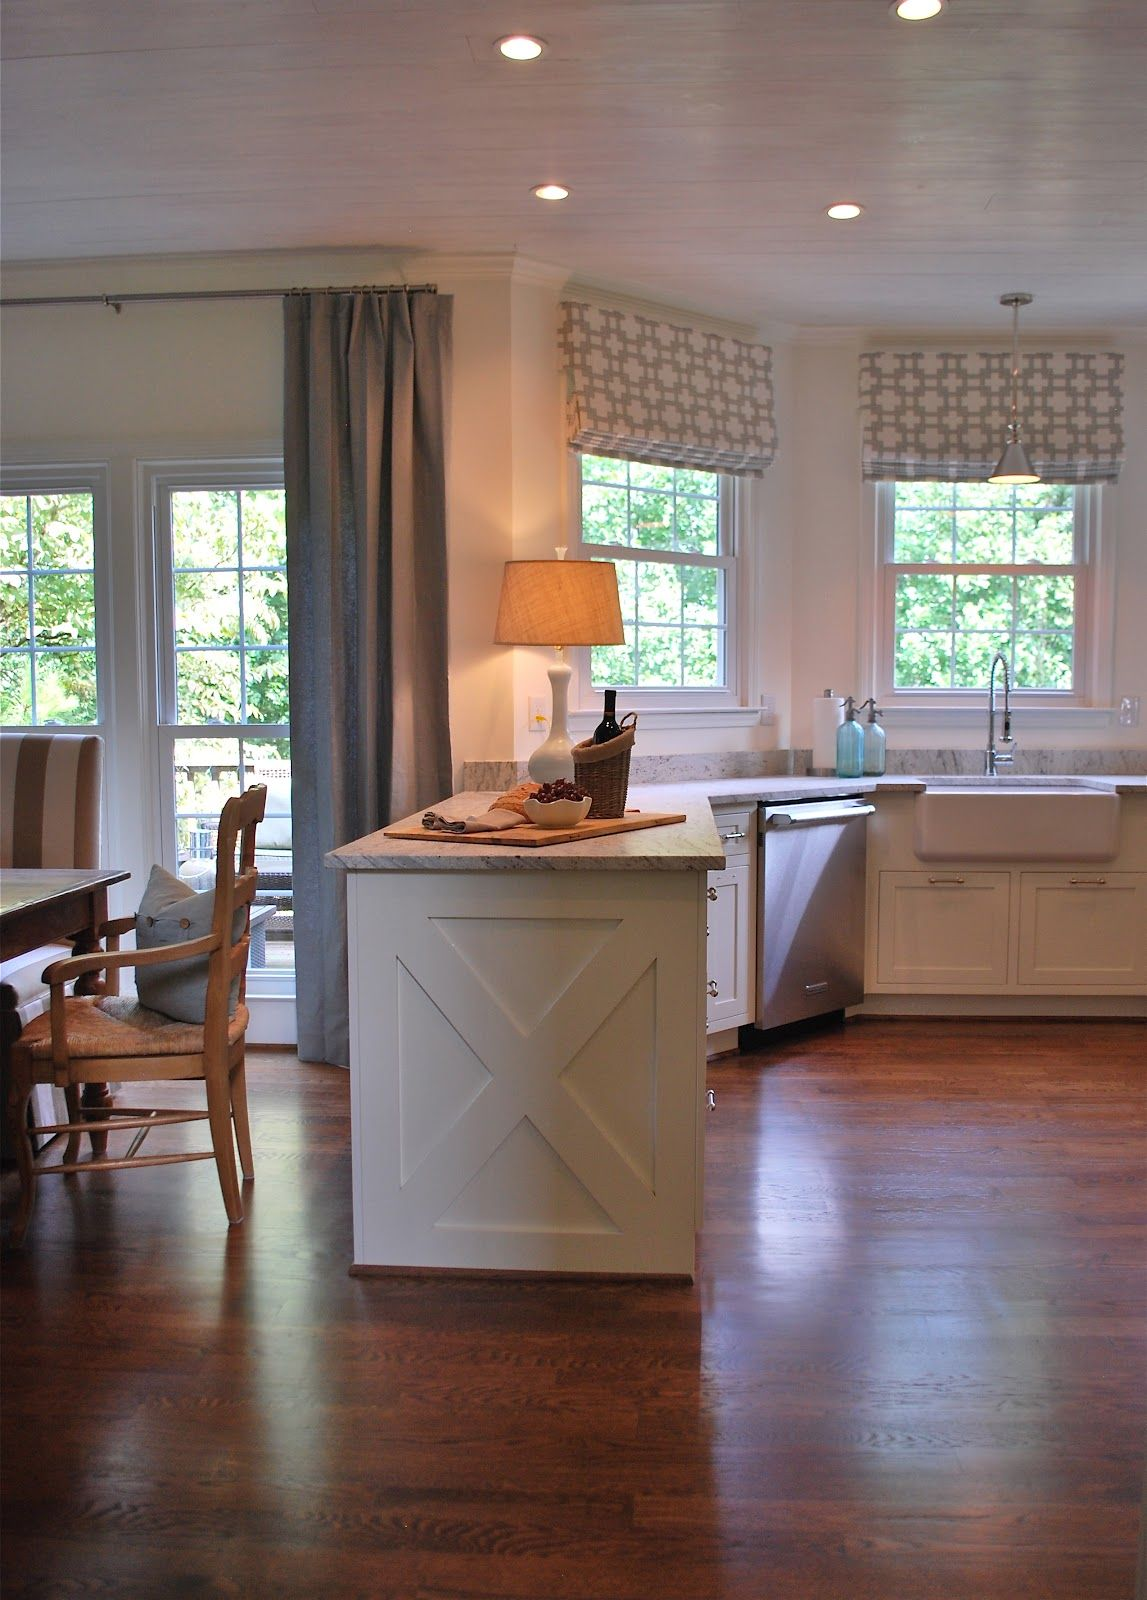 Pin By Kate Fitzgerald On Kitchens Kitchen Window Treatments Refacing Kitchen Cabinets Home